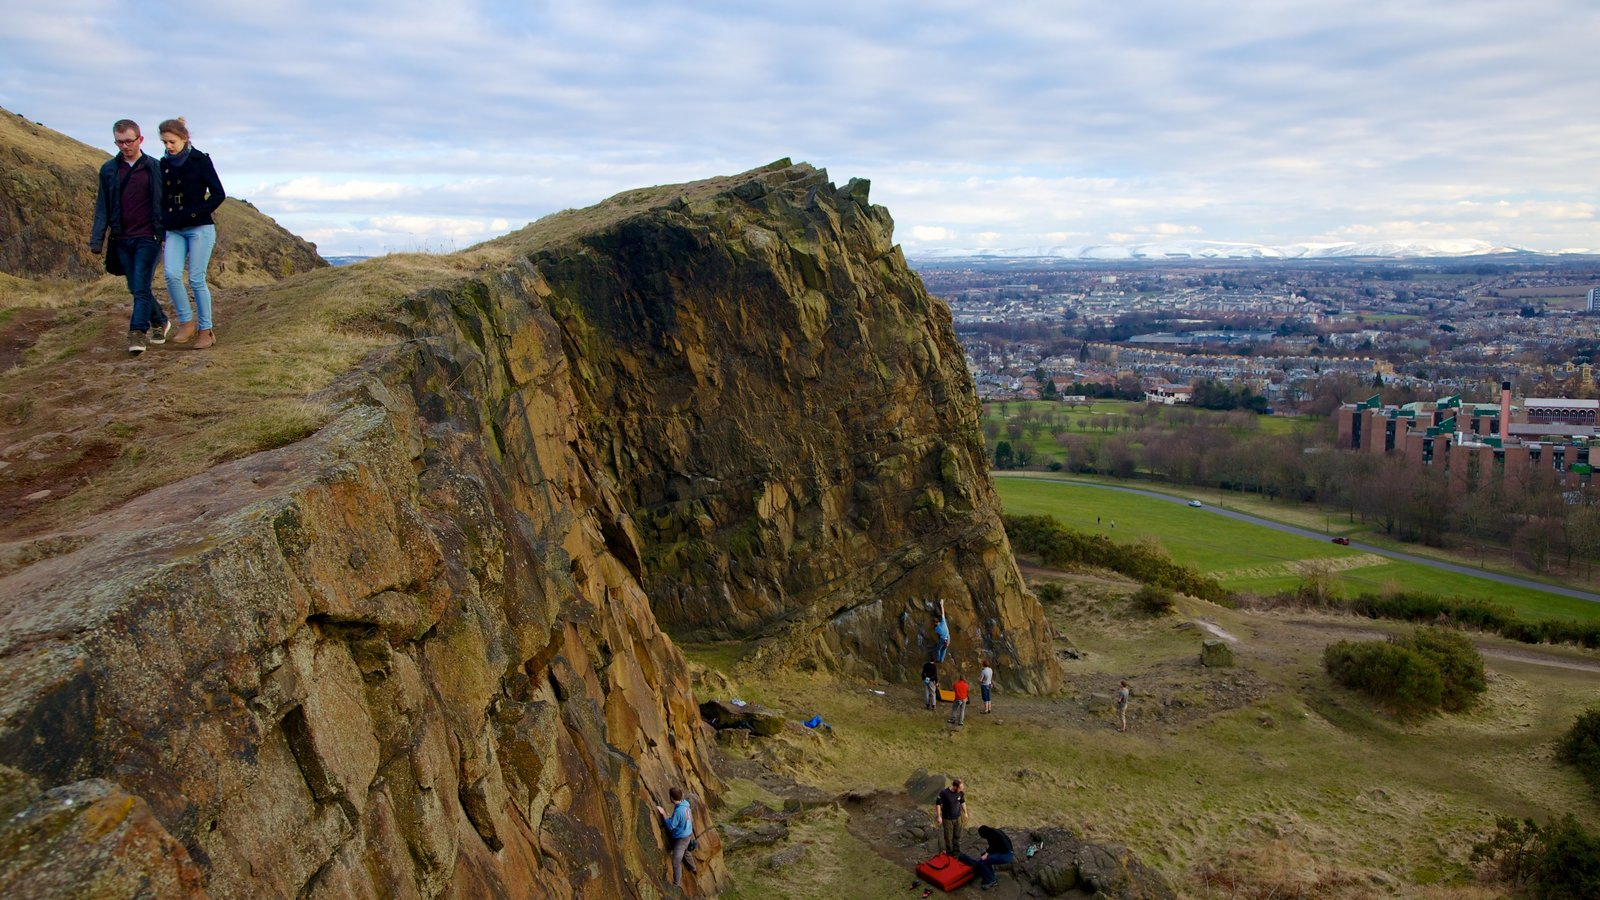 Arthur\\\'s Seat which includes hiking or walking, landscape views and mountains